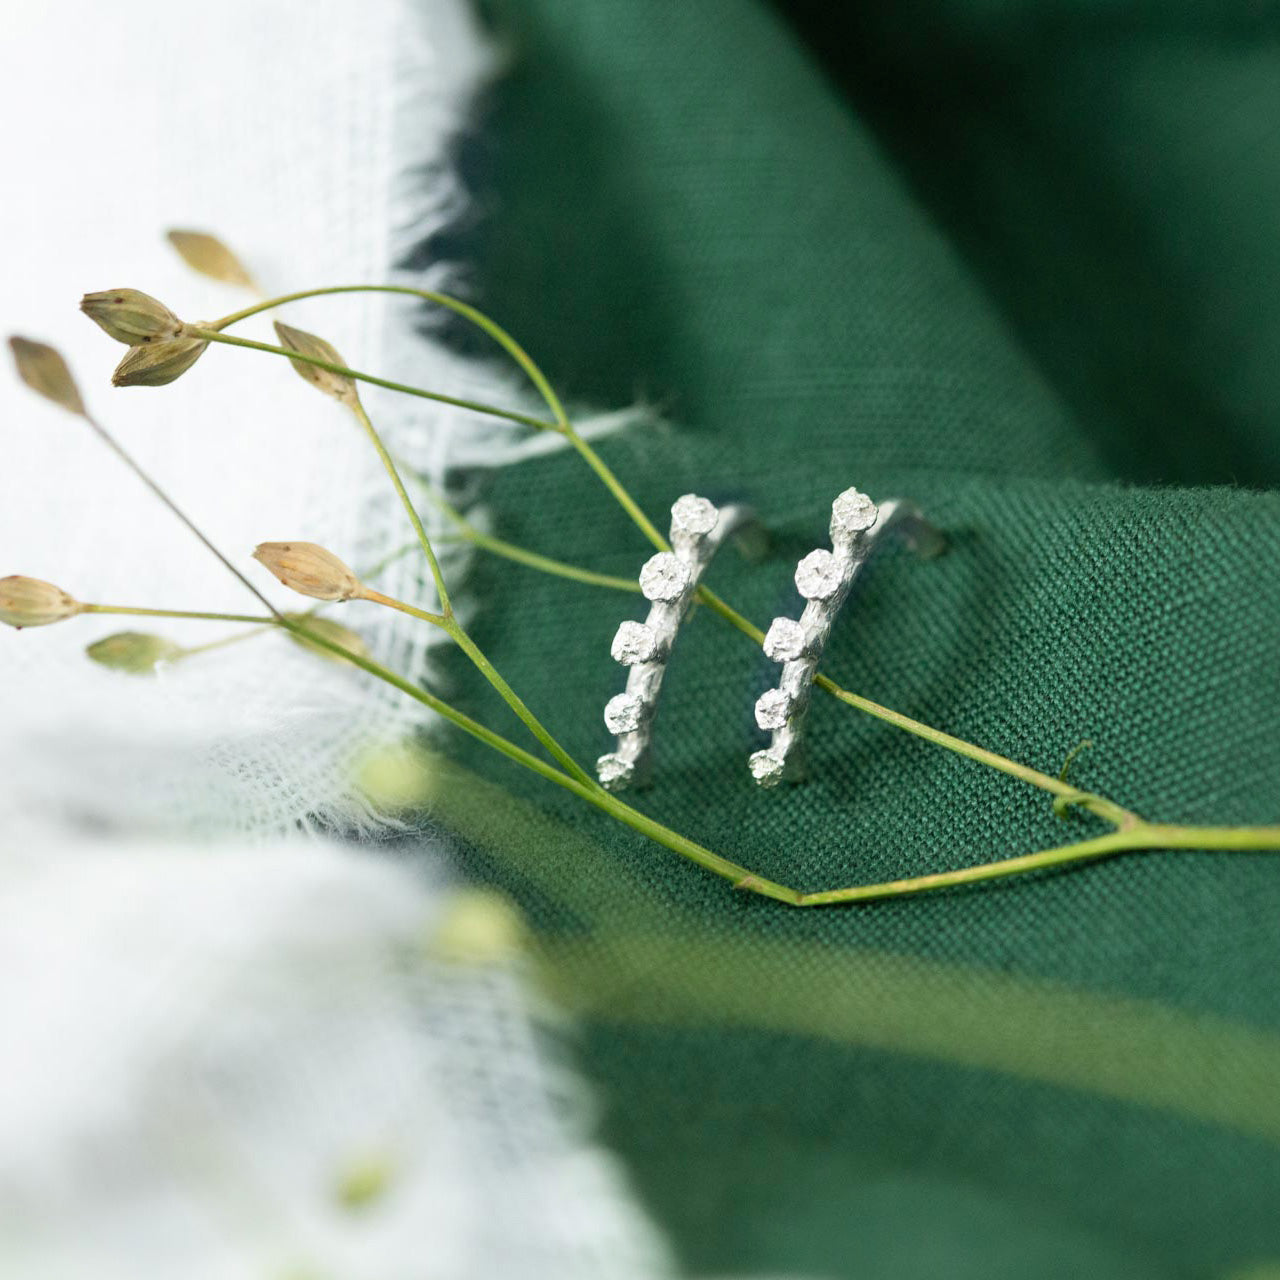 Silver Ivy bud half hoop earrings resting on green and white cloth with dried flowers in the foreground